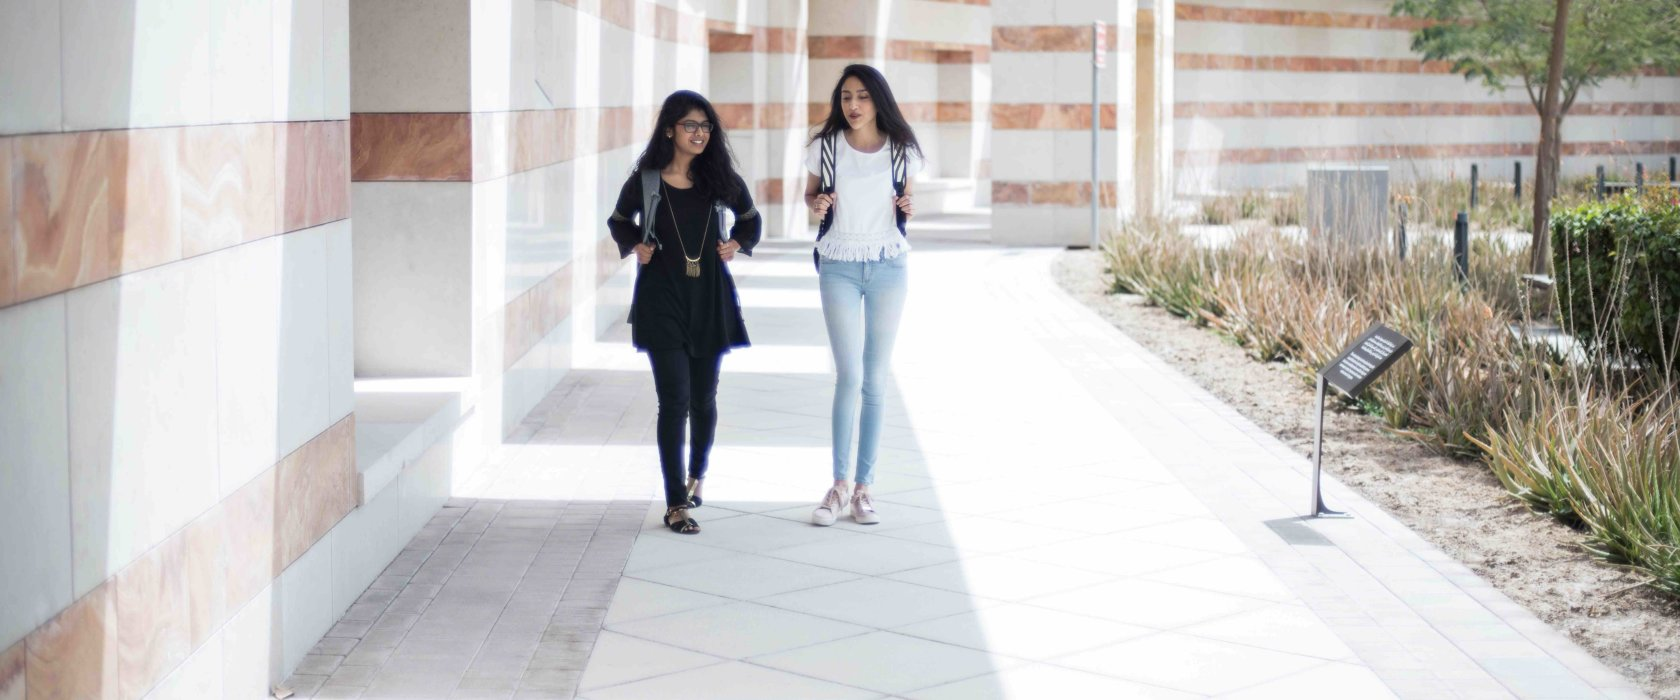 How QF is supporting students living on campus during lockdown